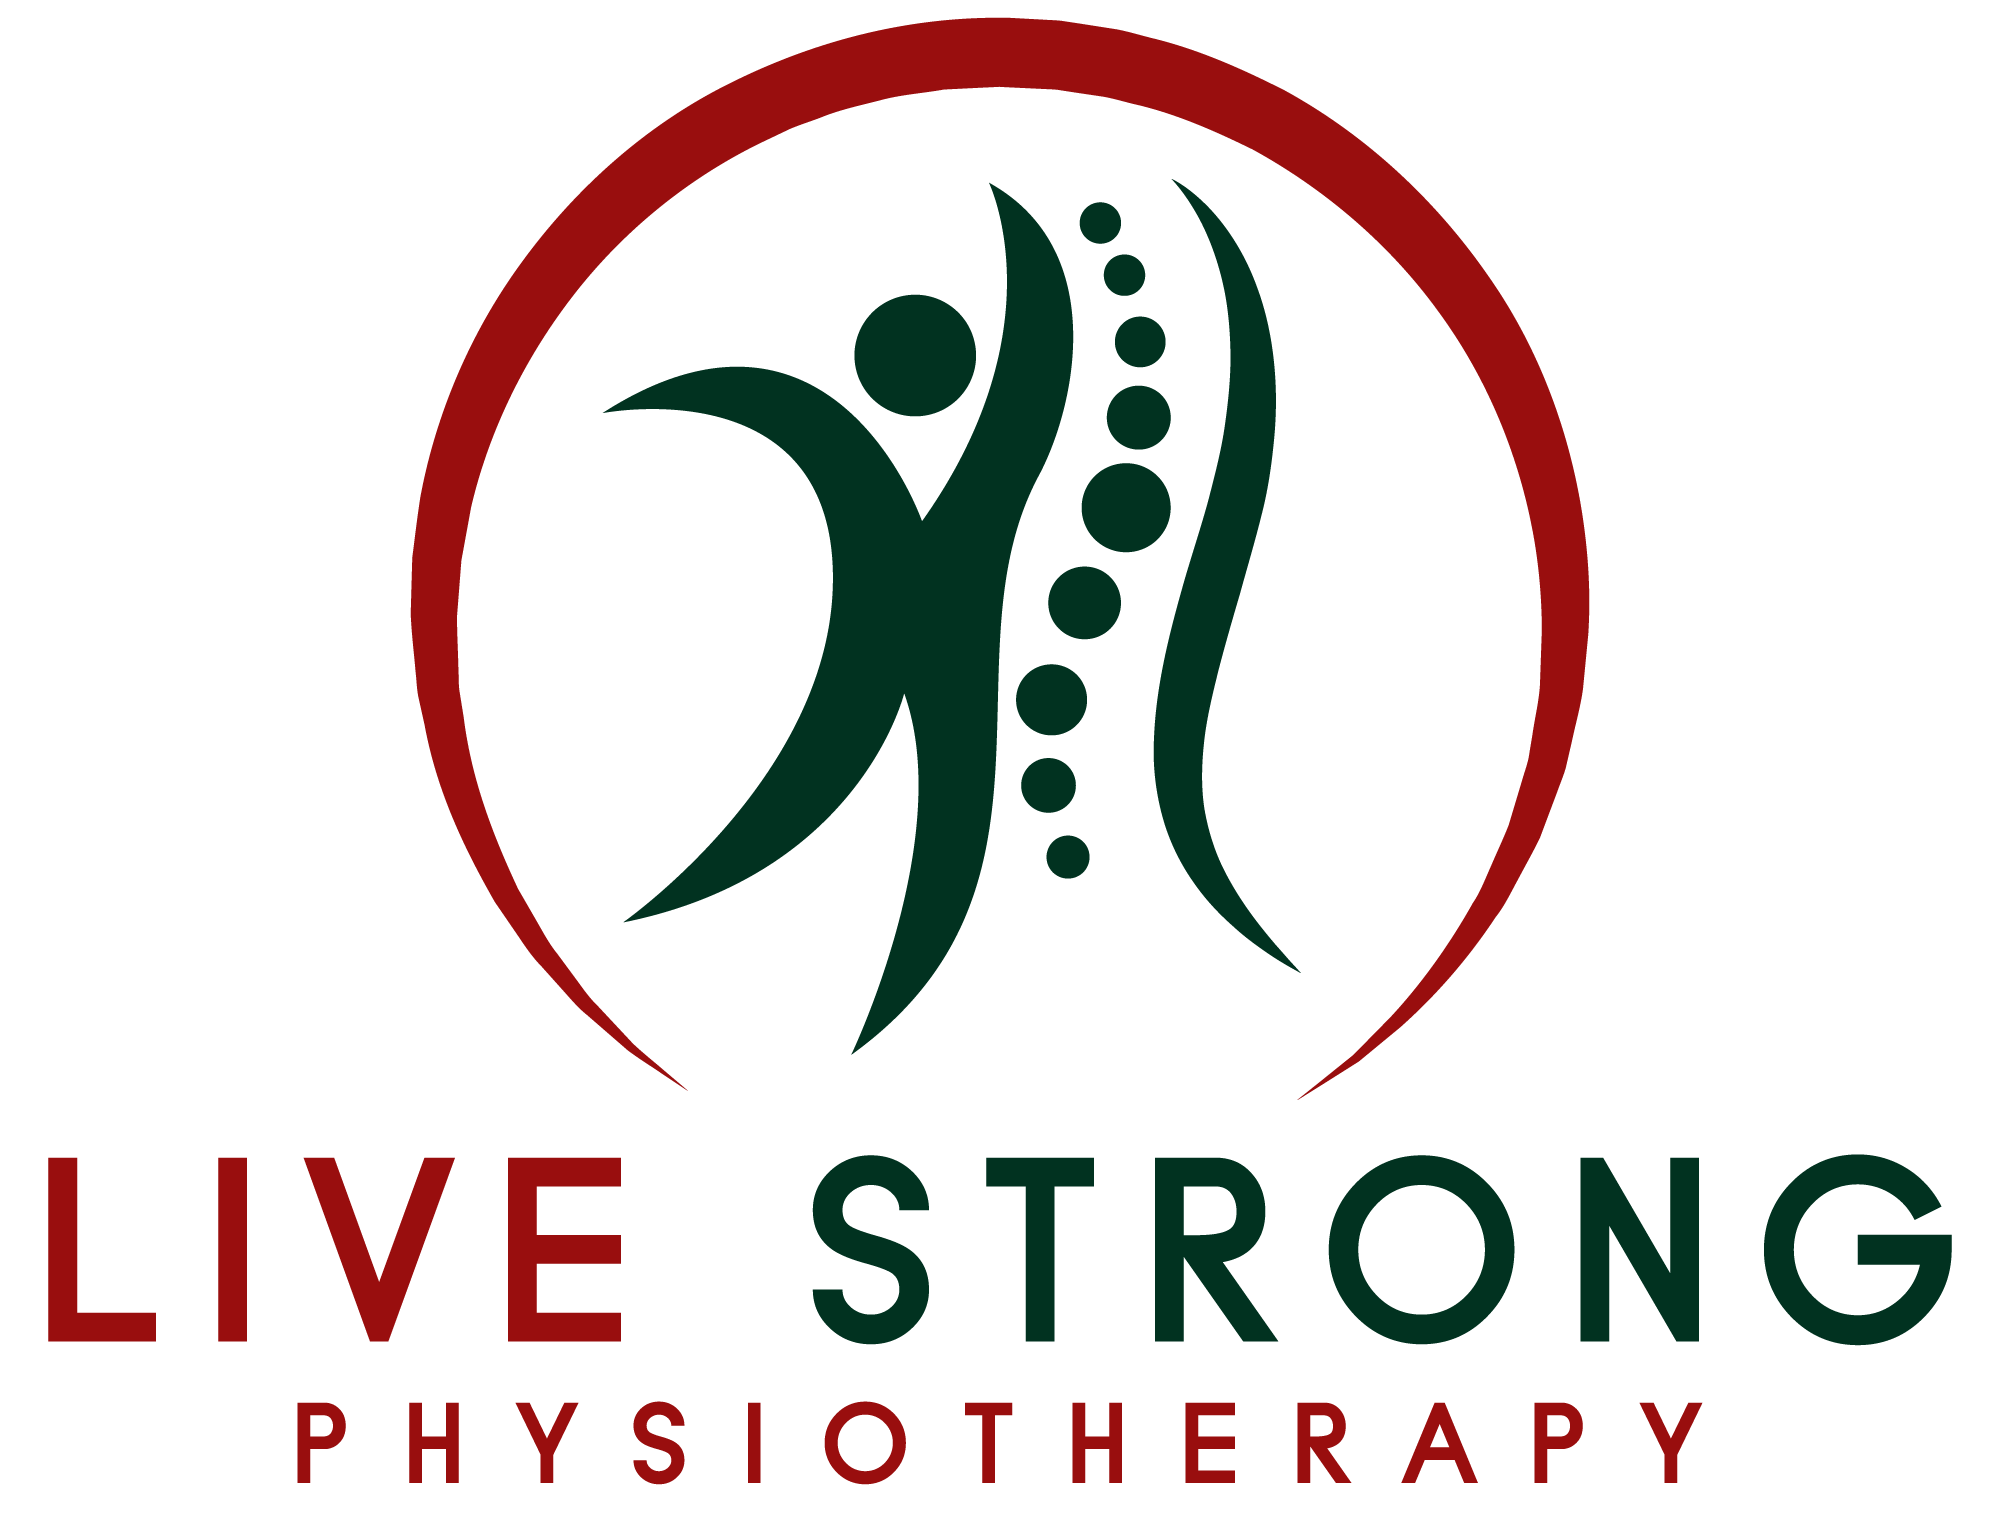 Live Strong Physiotherapy